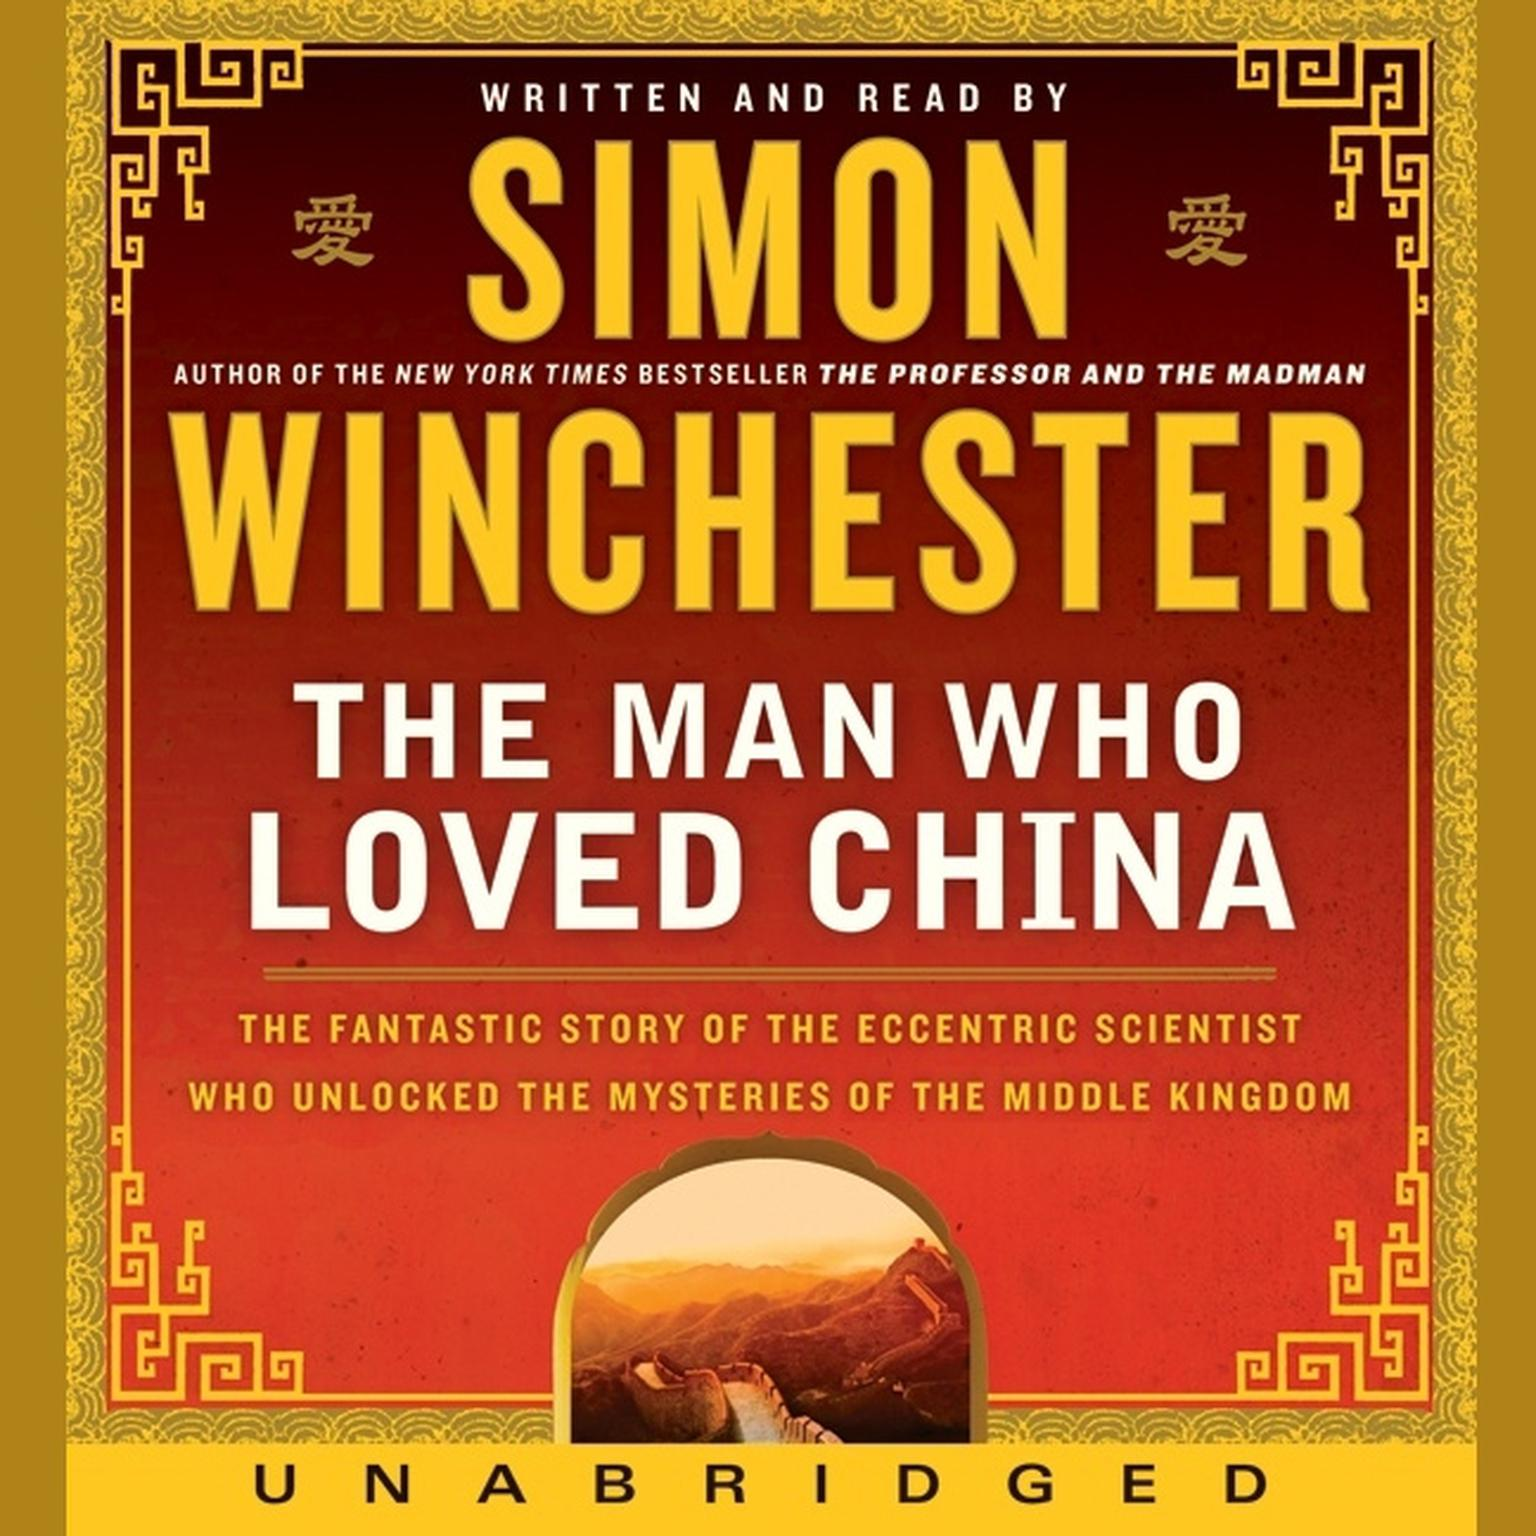 Printable The Man Who Loved China: The Fantastic Story of the Eccentric Scientist Who Unlocked the Mysteries of the Middle Kingdom' The Fantastic Story of the Eccentric Scientist Who Unlocked the Mysteries of the Middle Kingdom' Audiobook Cover Art